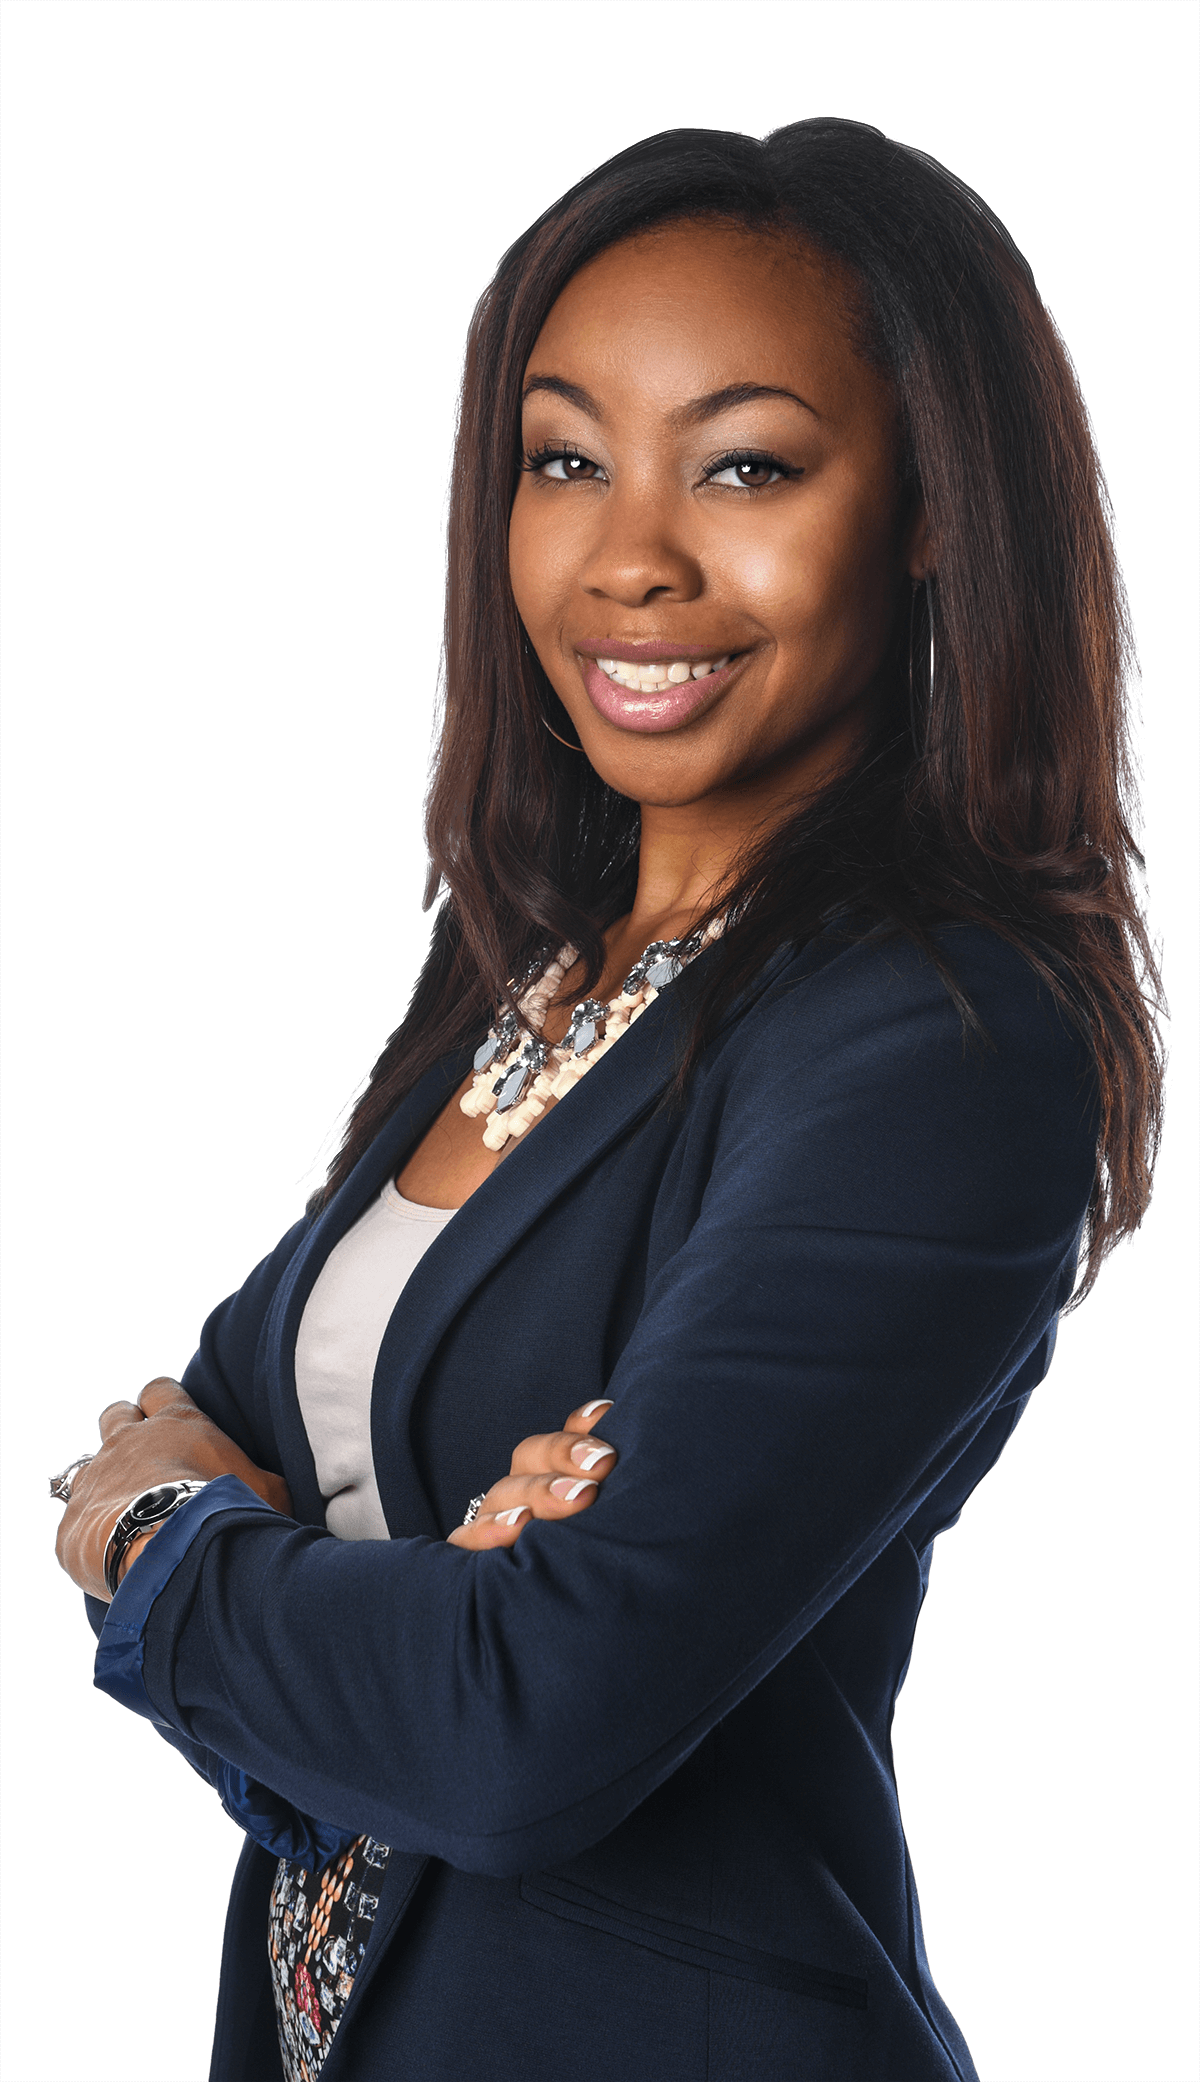 Black business woman png. Career services beauty schools